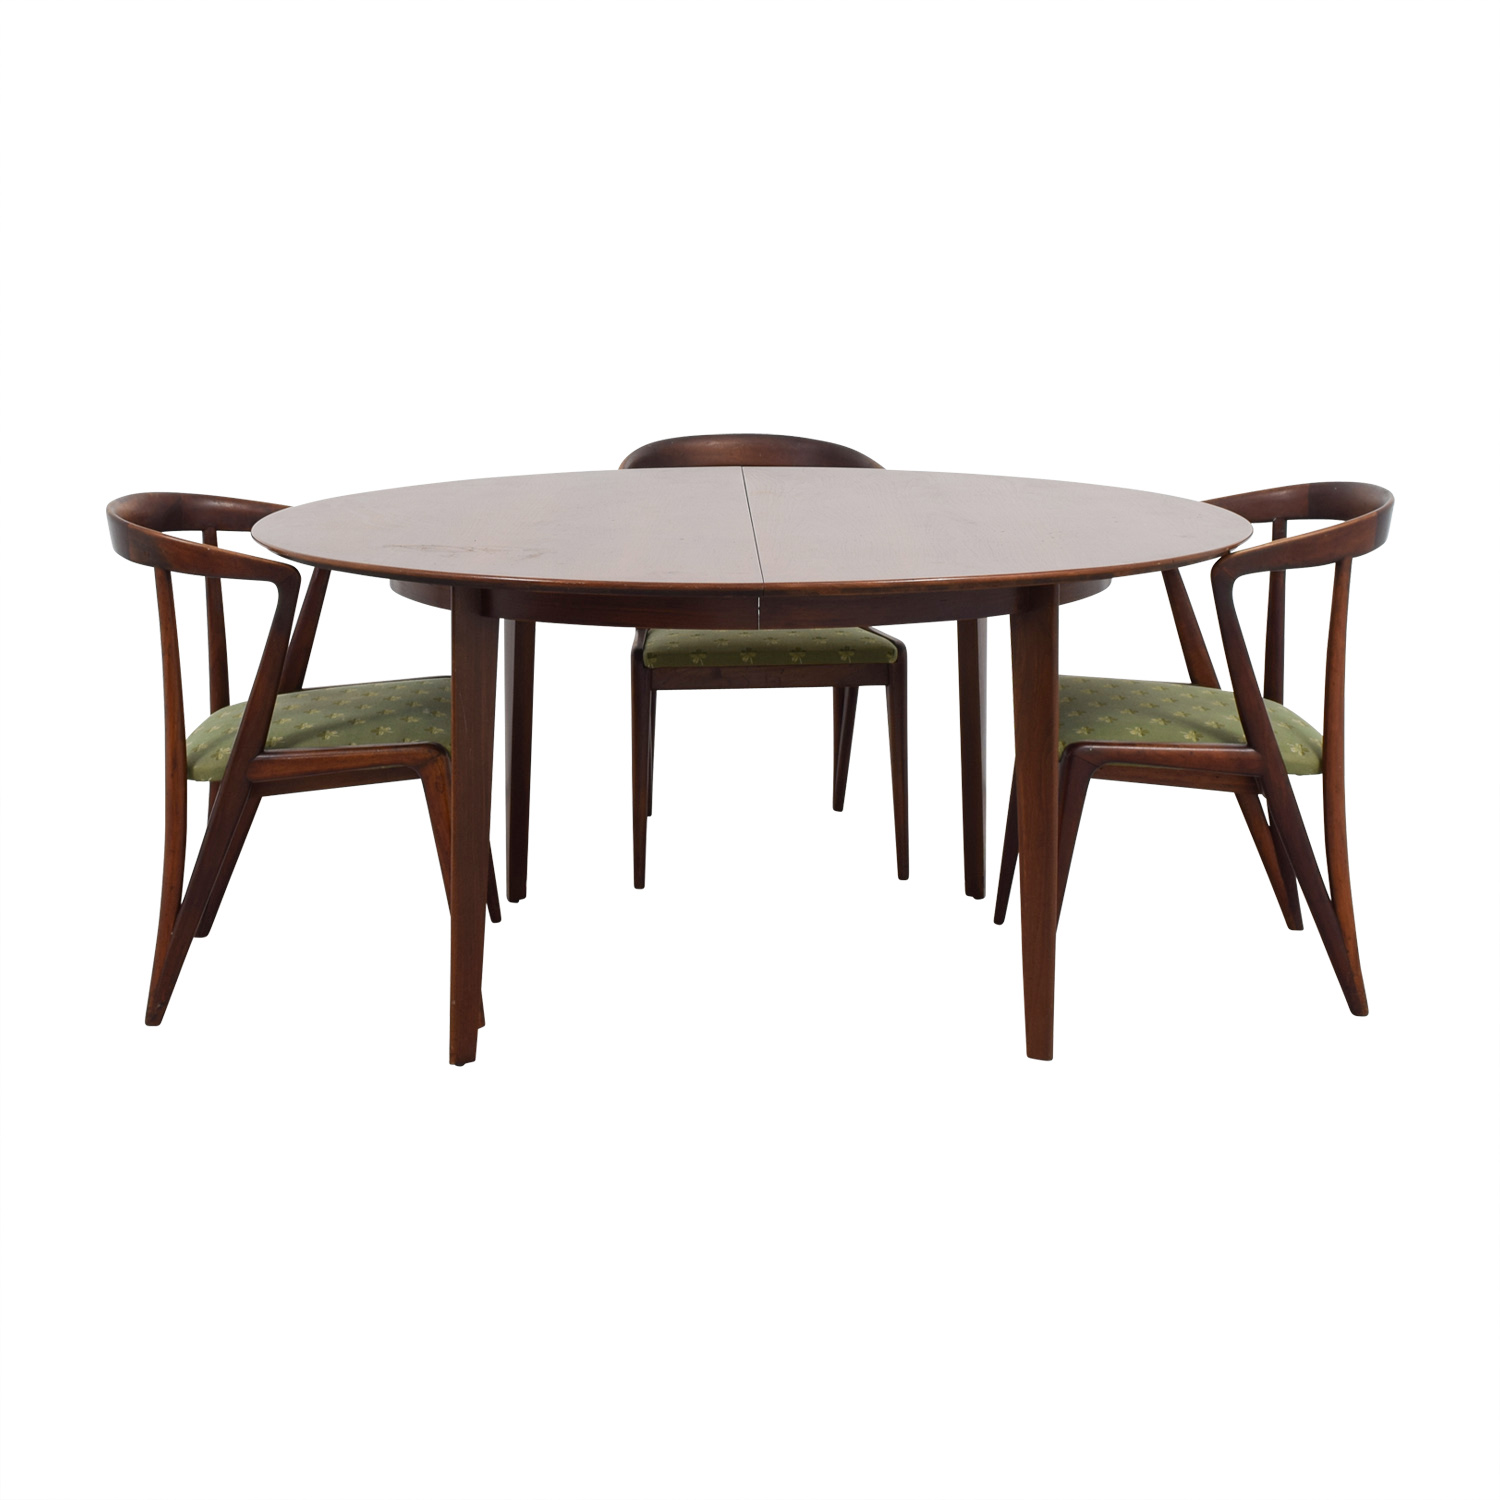 Dunbar Dunbar Mid-Century Two-Leaf Extention Dining Set used